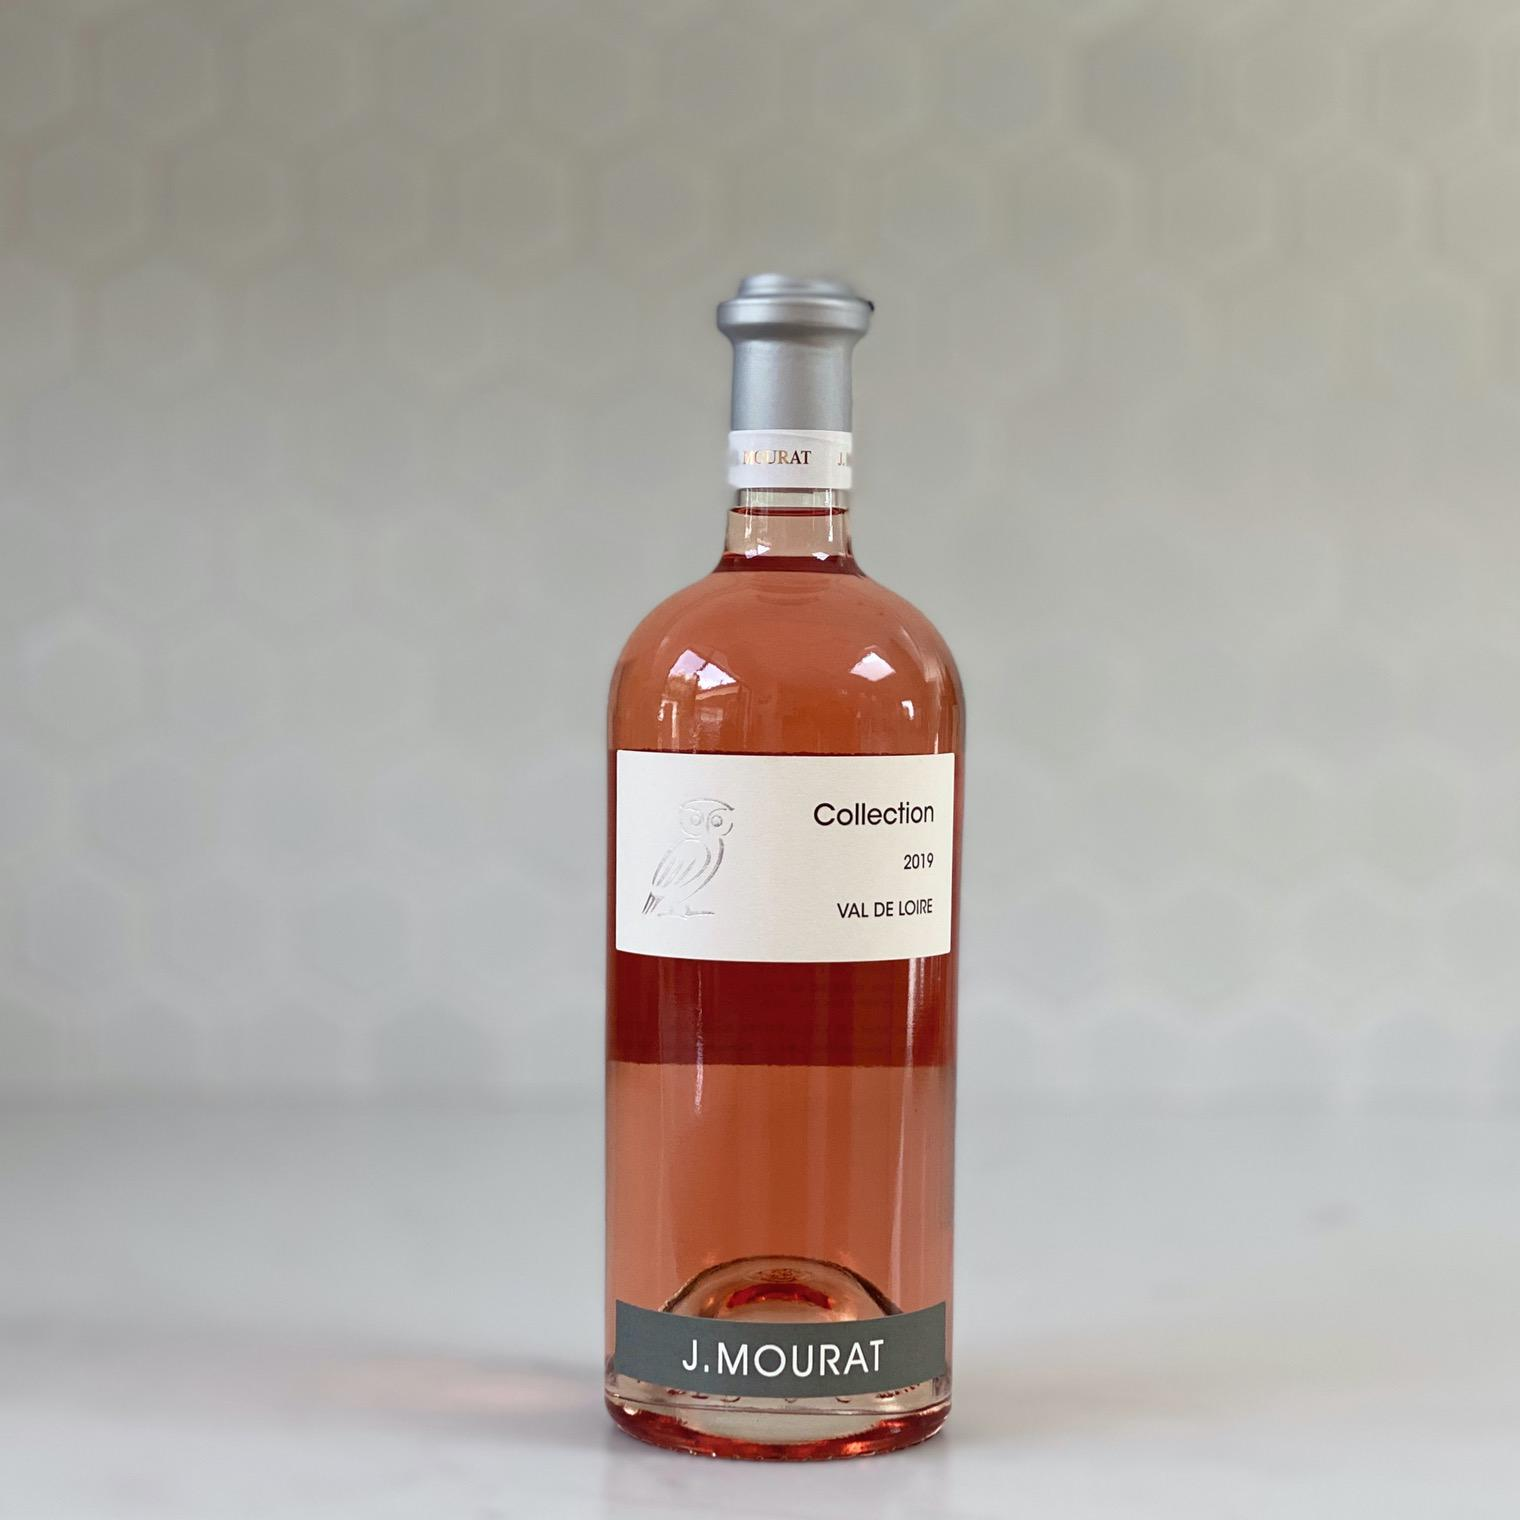 J MOURAT collecton rosé 2019